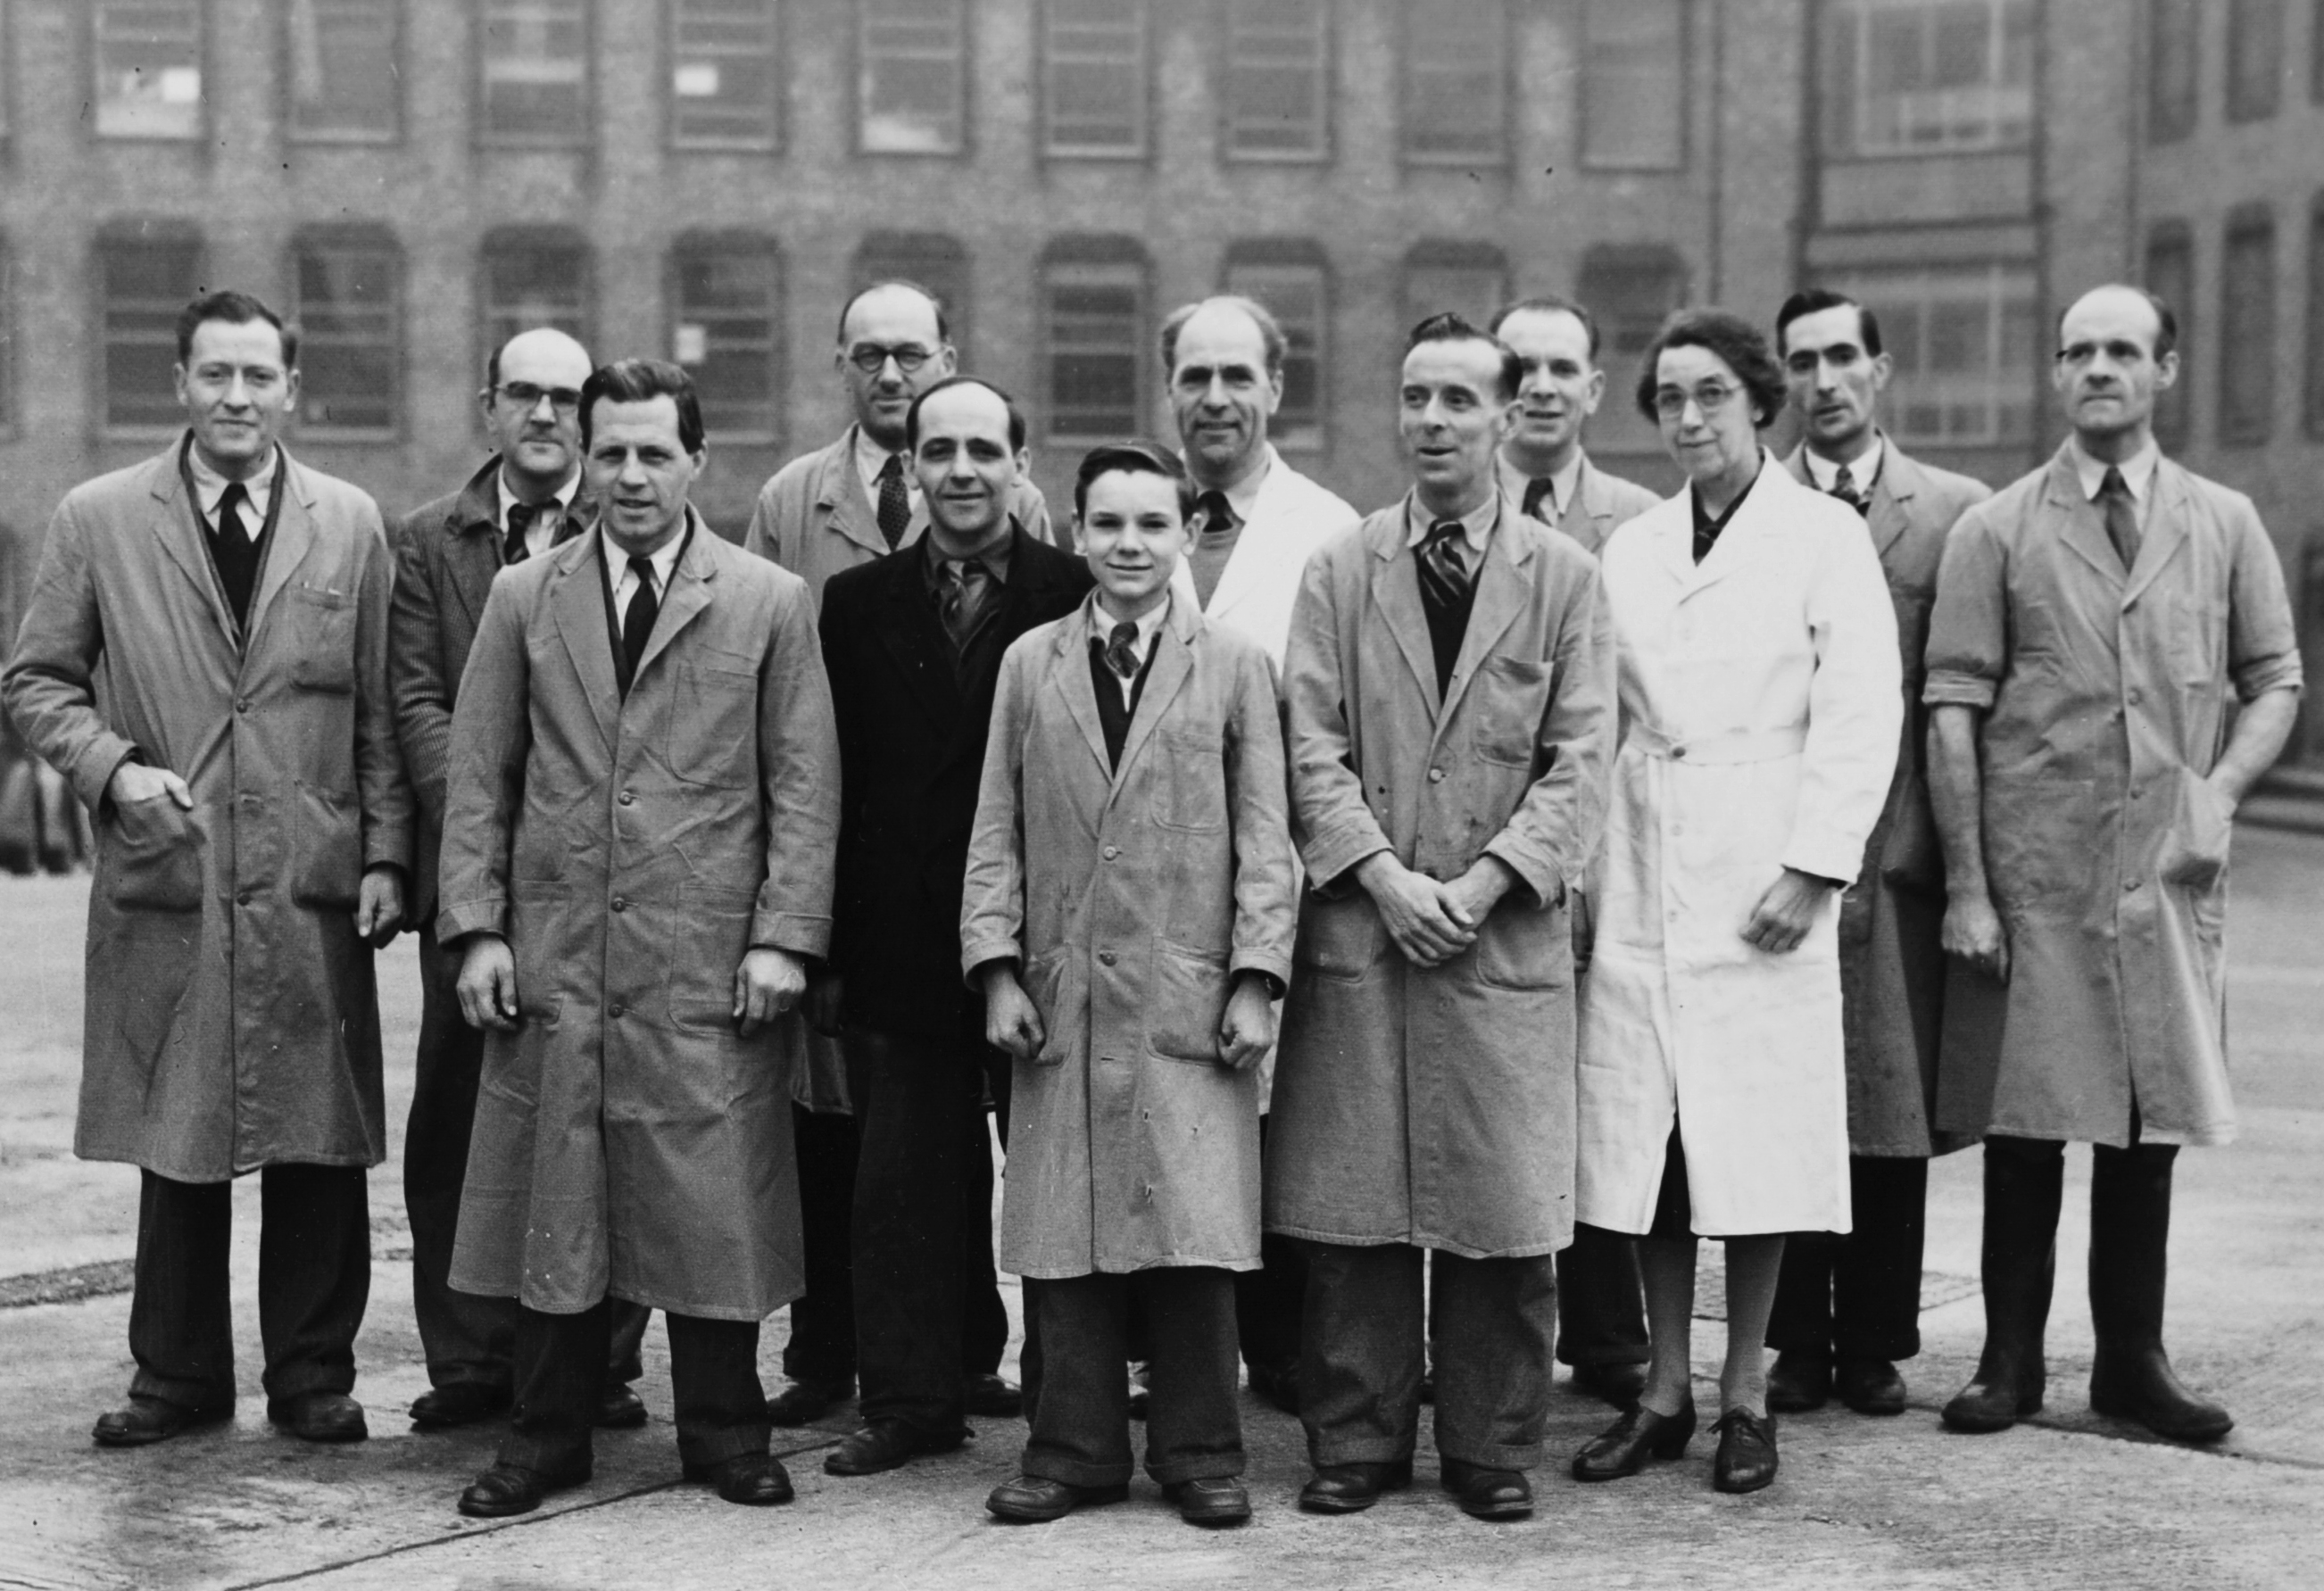 File:NIMR Lab Technicians in Brown and White Coats.jpg - Wikimedia